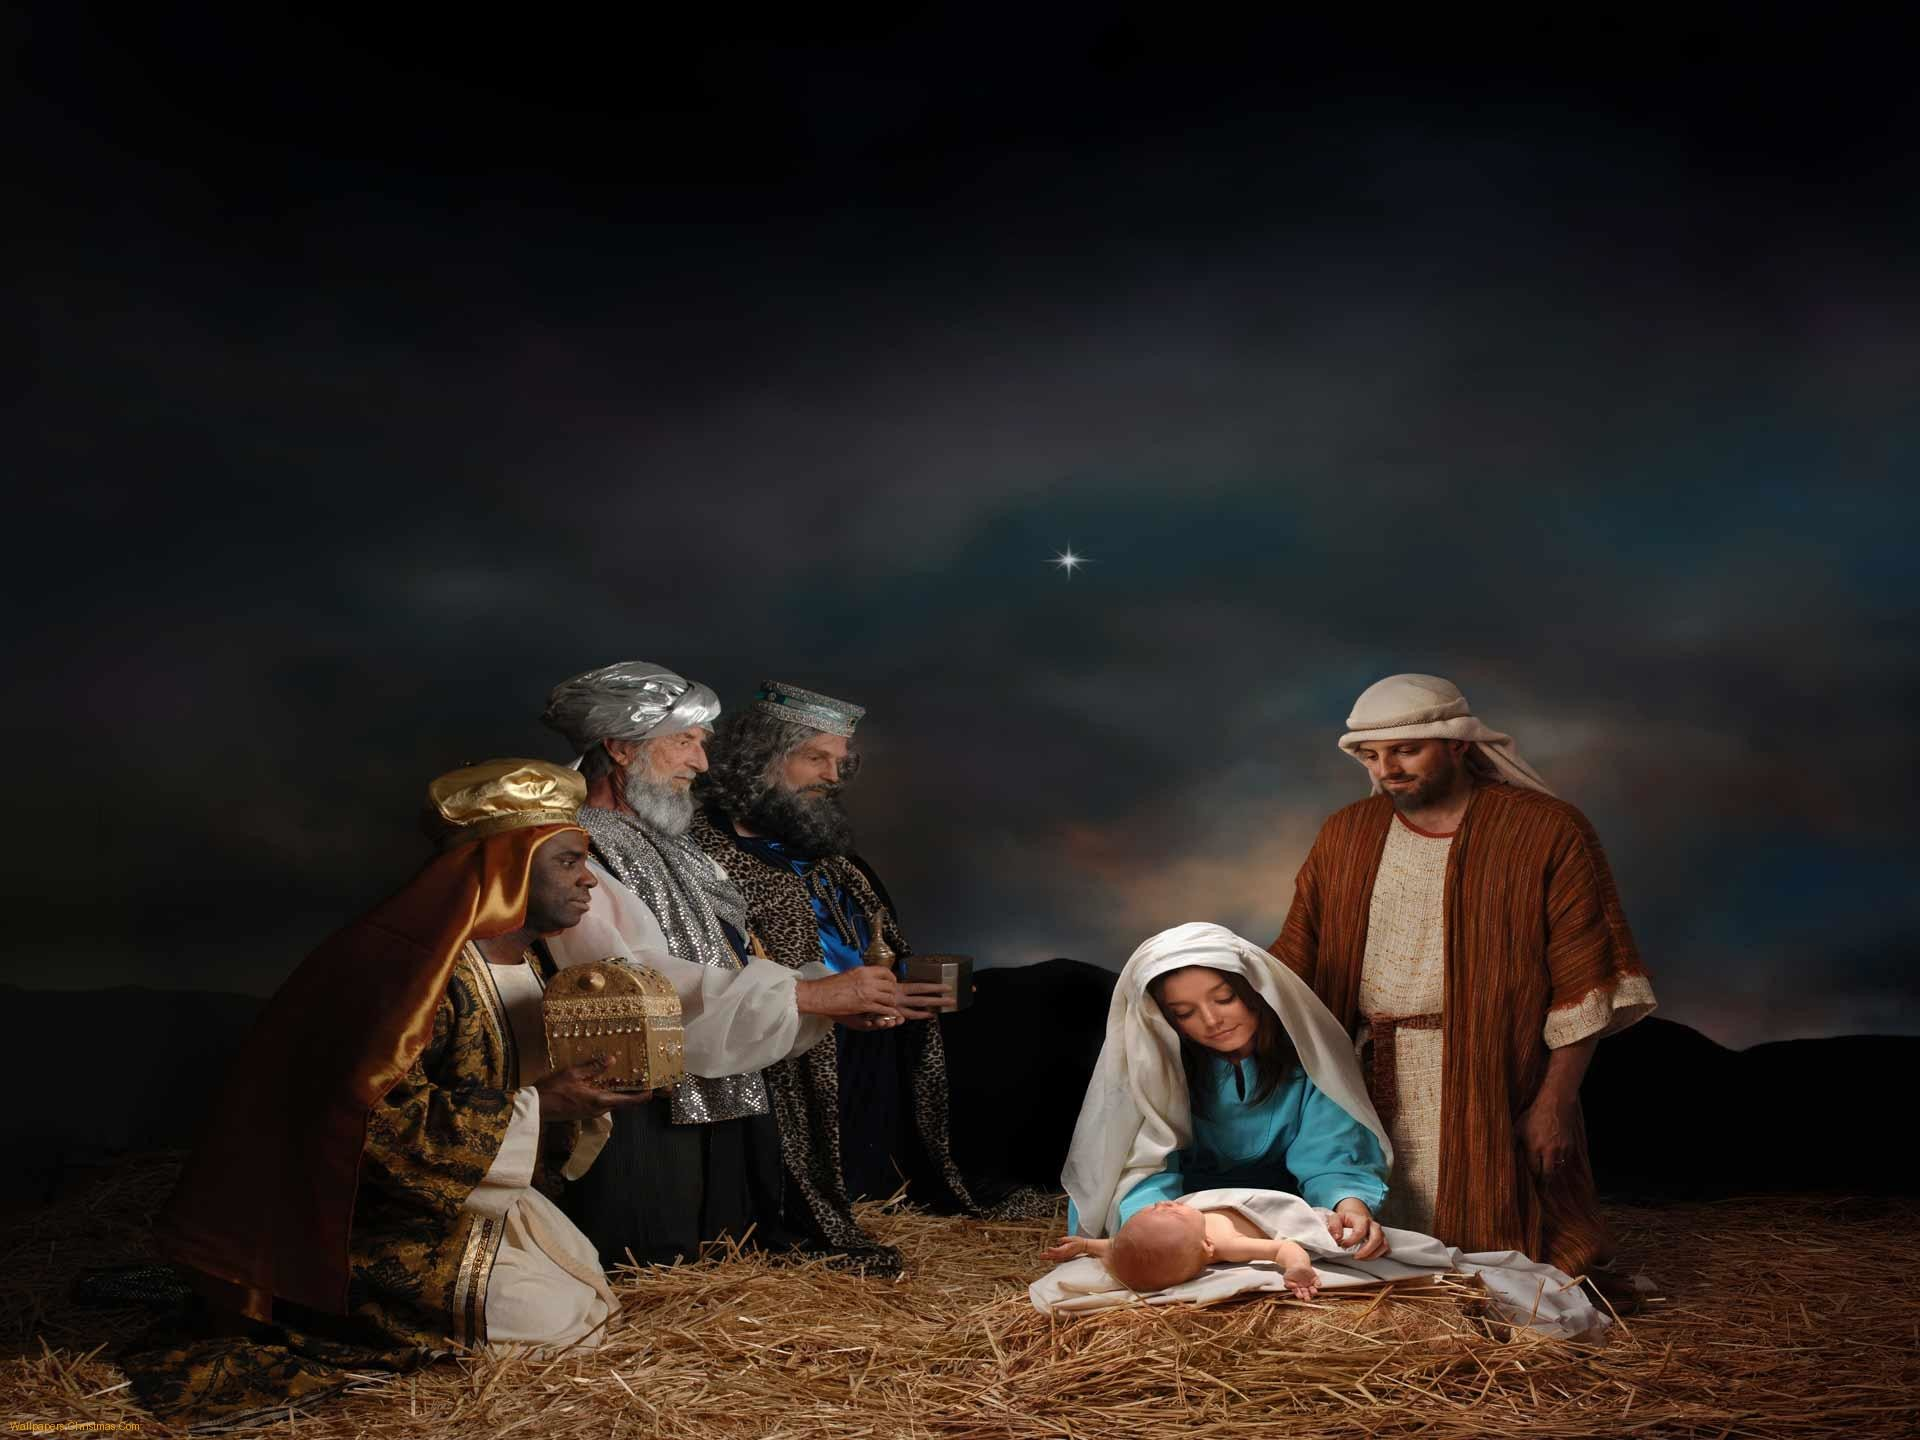 1920x1440 Nativity Backgrounds (30 Wallpapers)